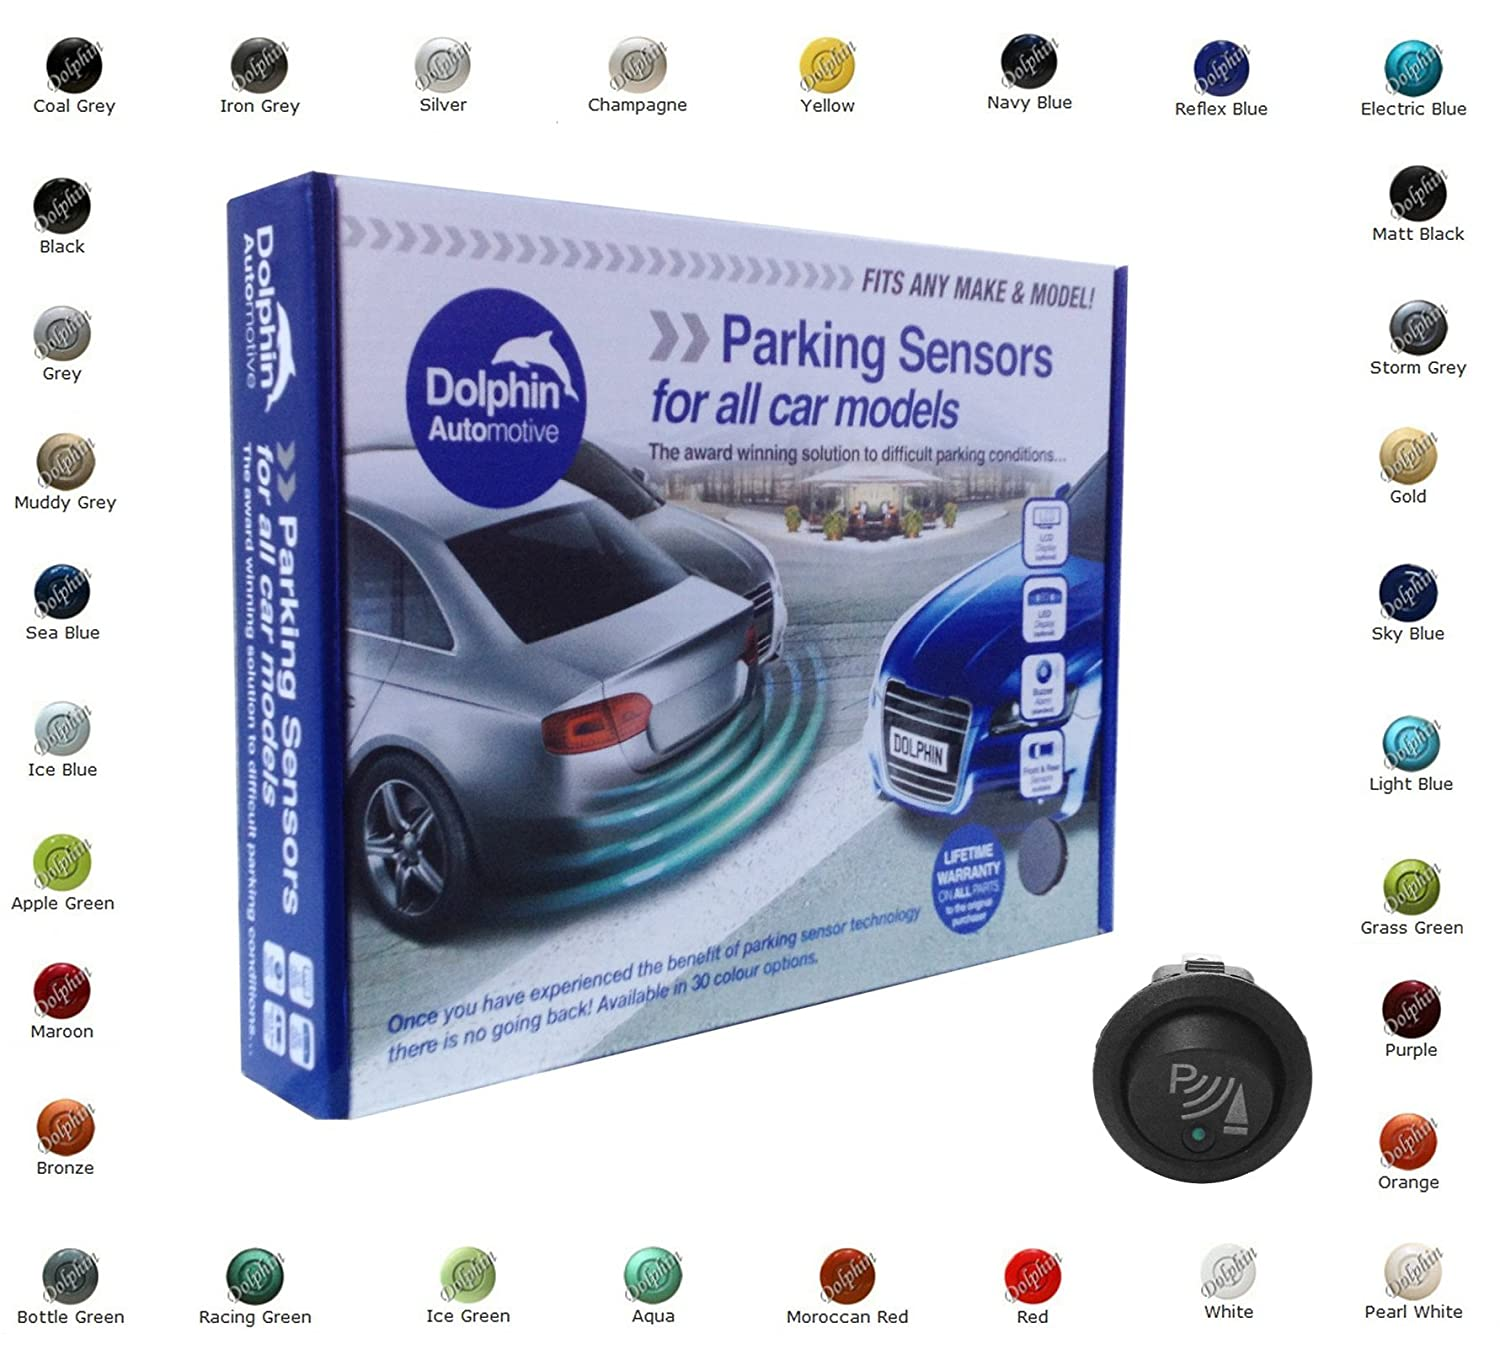 Dolphin Car Van Front Parking Sensors With Longer 6m Leads and Parking Switch in 32 Coloured Options UK (Gloss Black) Dolphin Automotive DPS400F